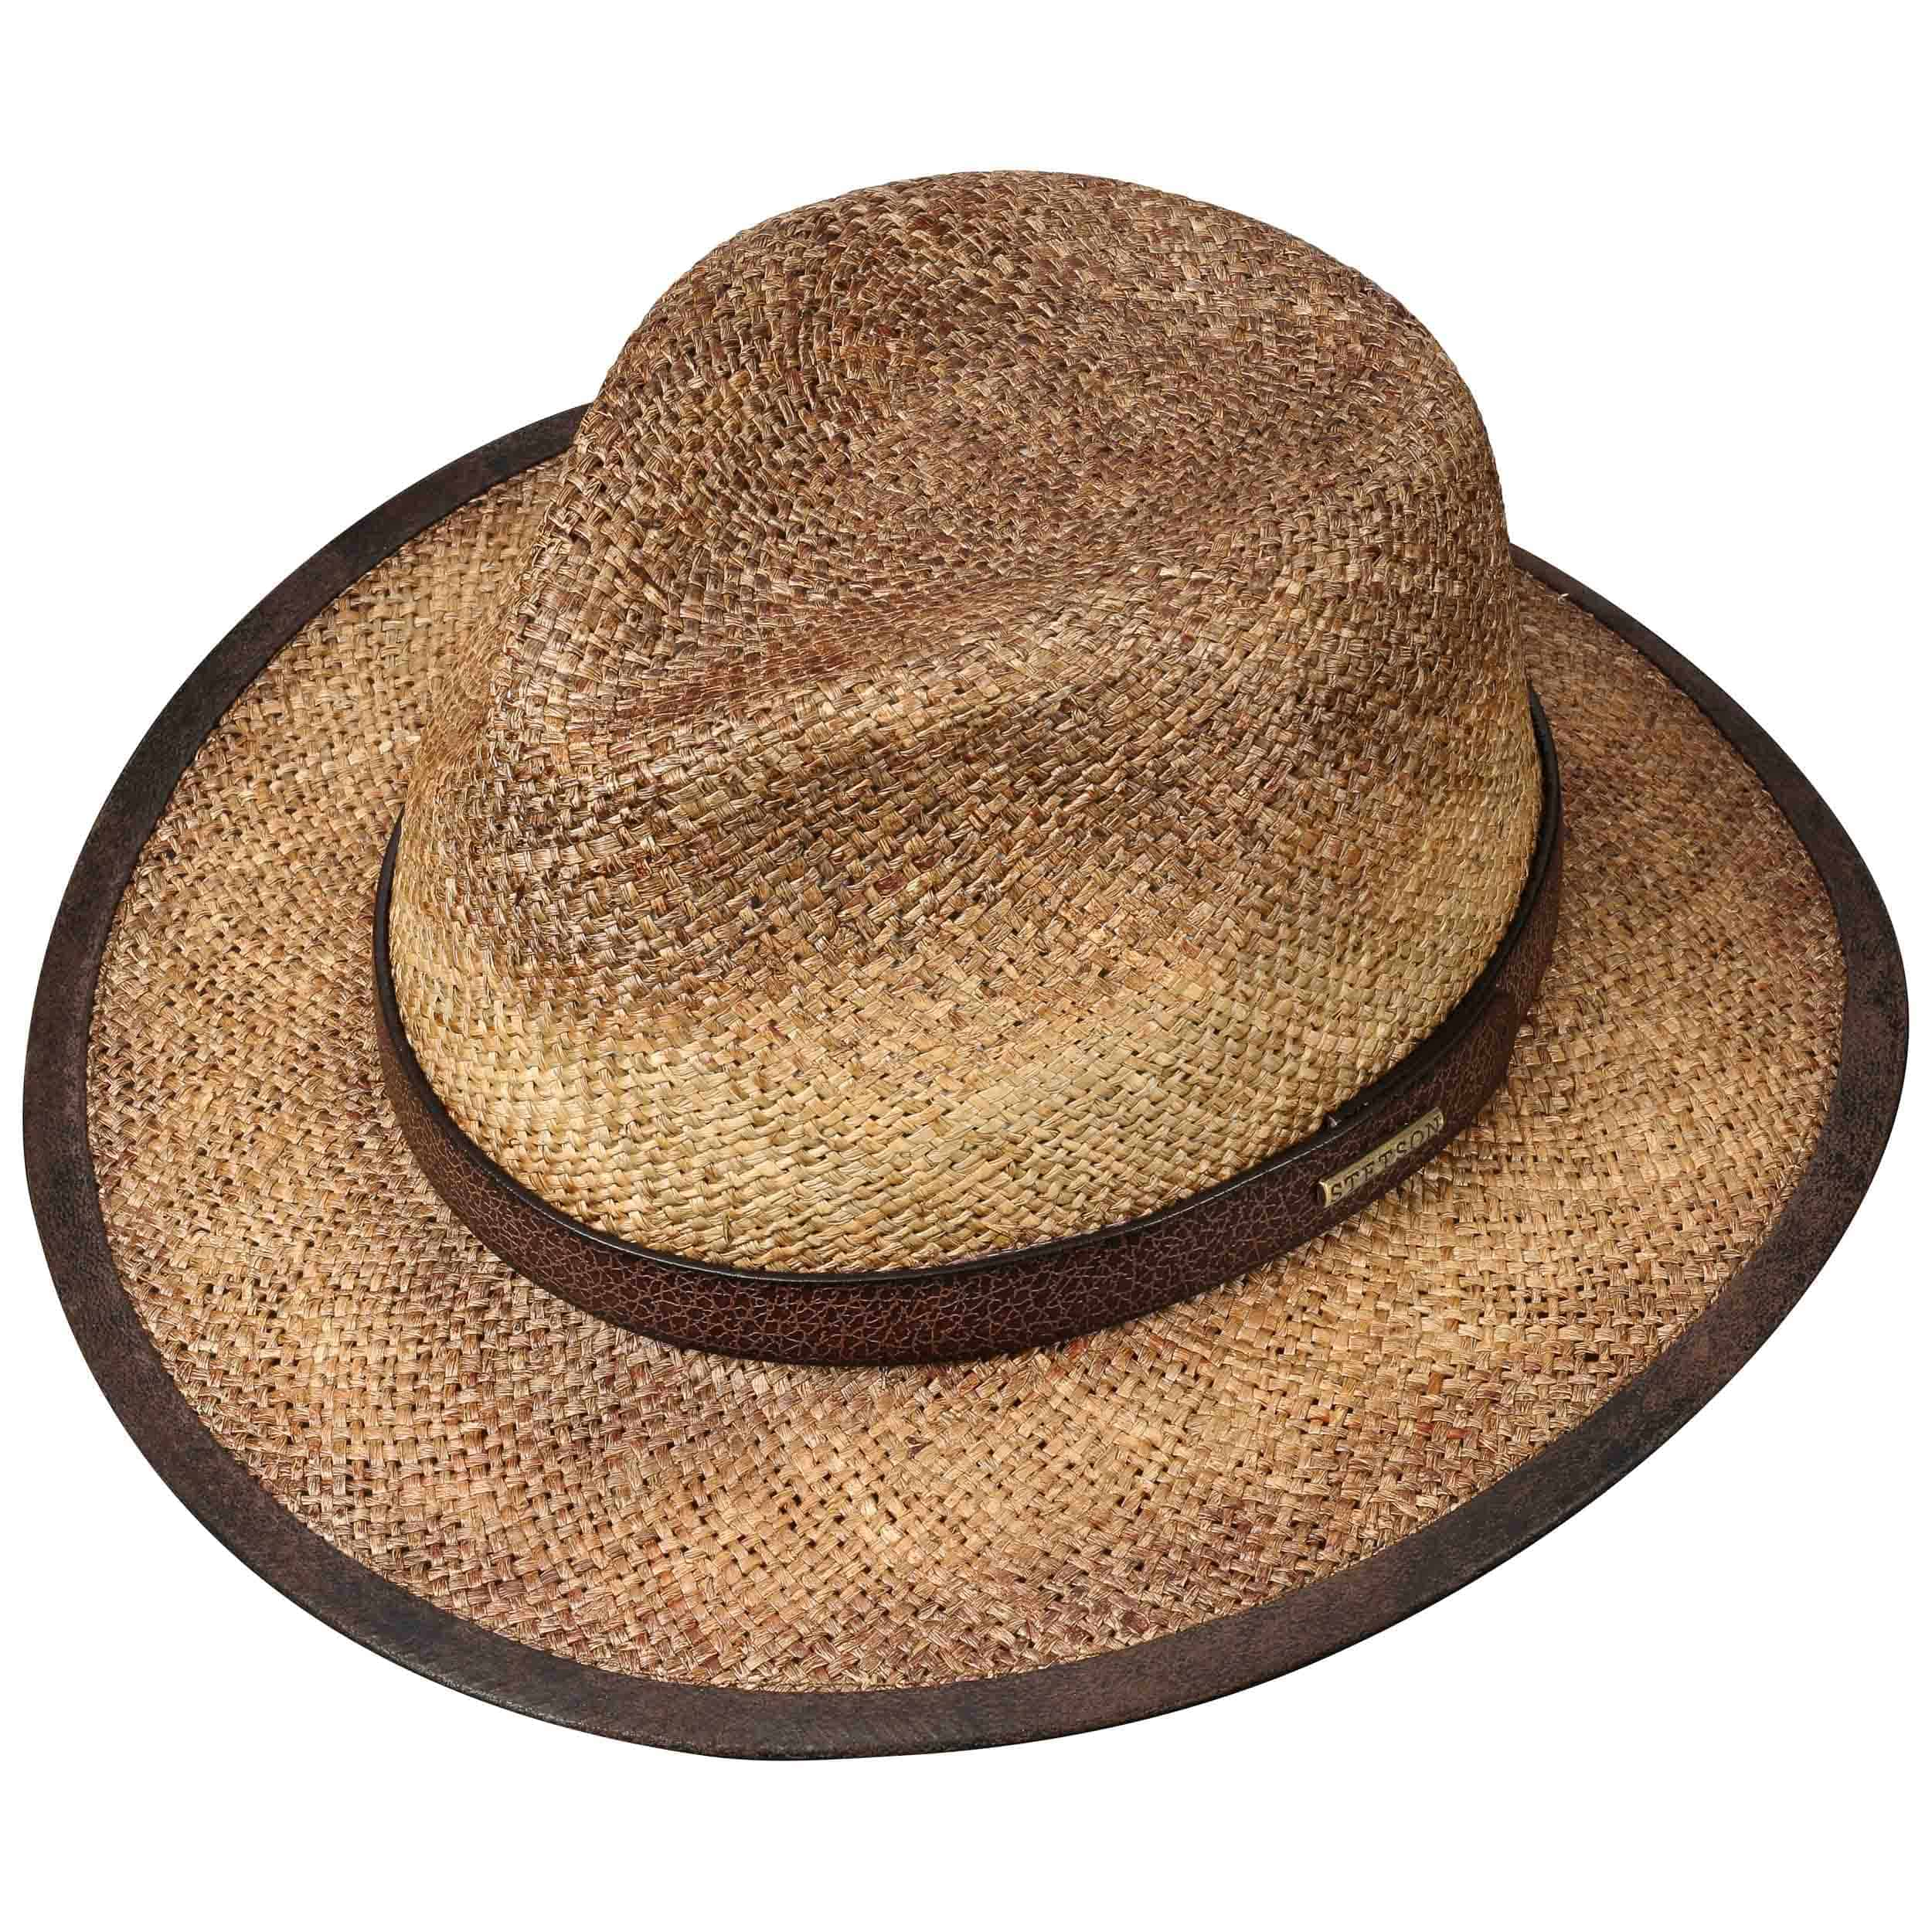 8e853326bf5 Rodeo Seagrass Traveller Hat by Stetson - brown 1 ...